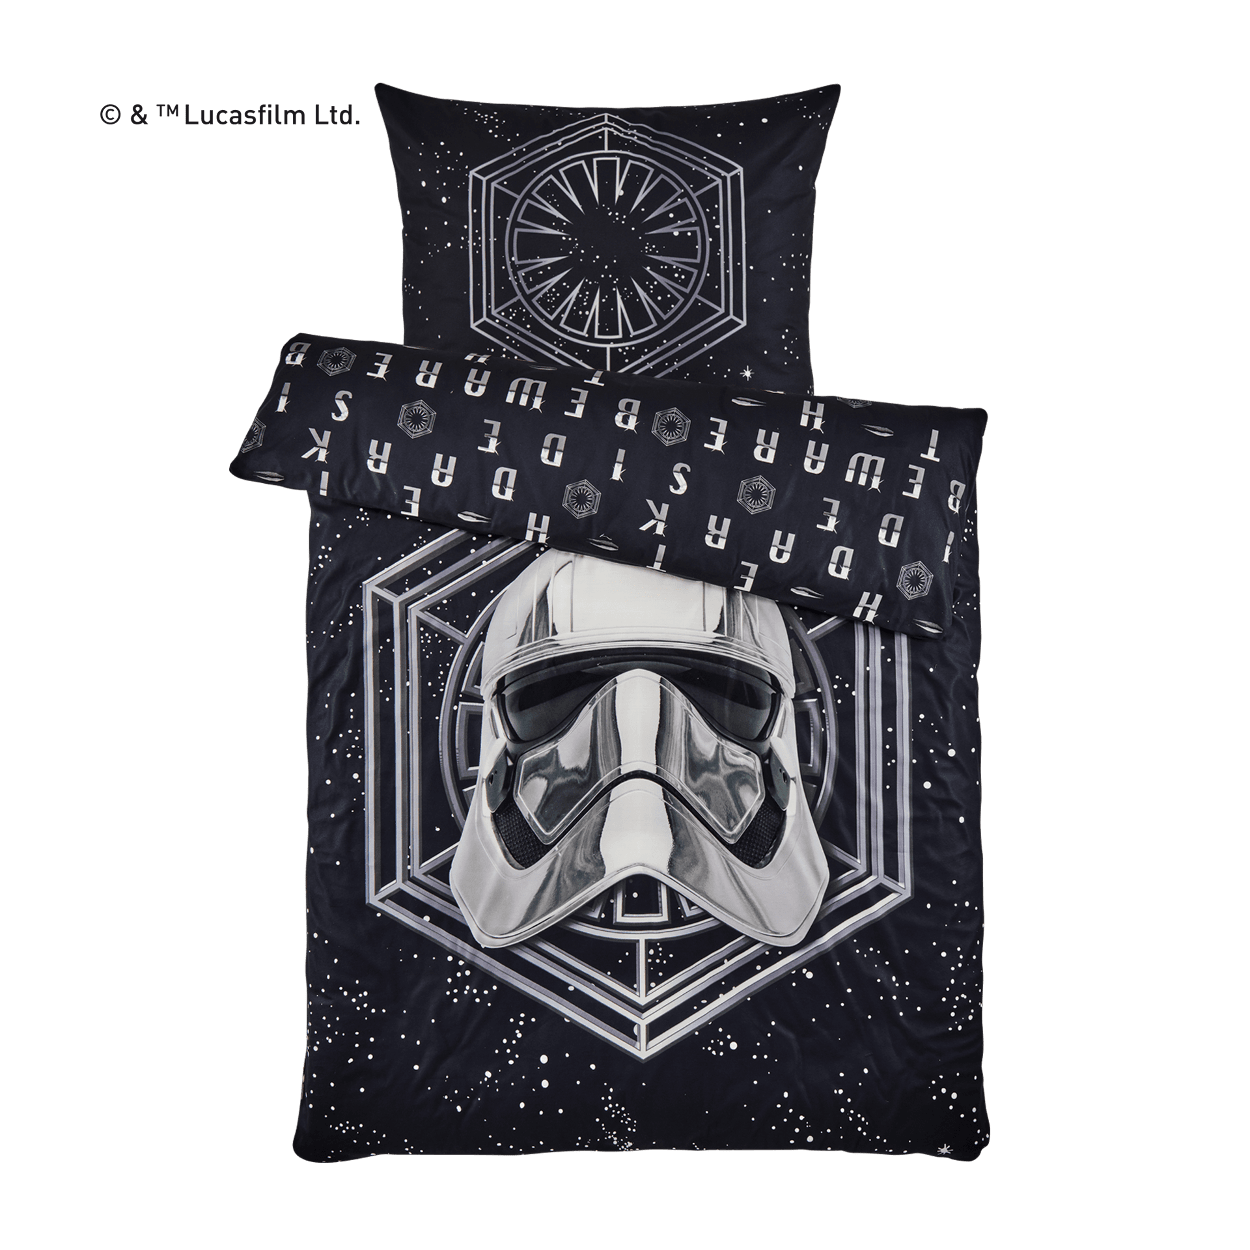 ab sa star wars fleece bettw sche g nstig bei aldi. Black Bedroom Furniture Sets. Home Design Ideas